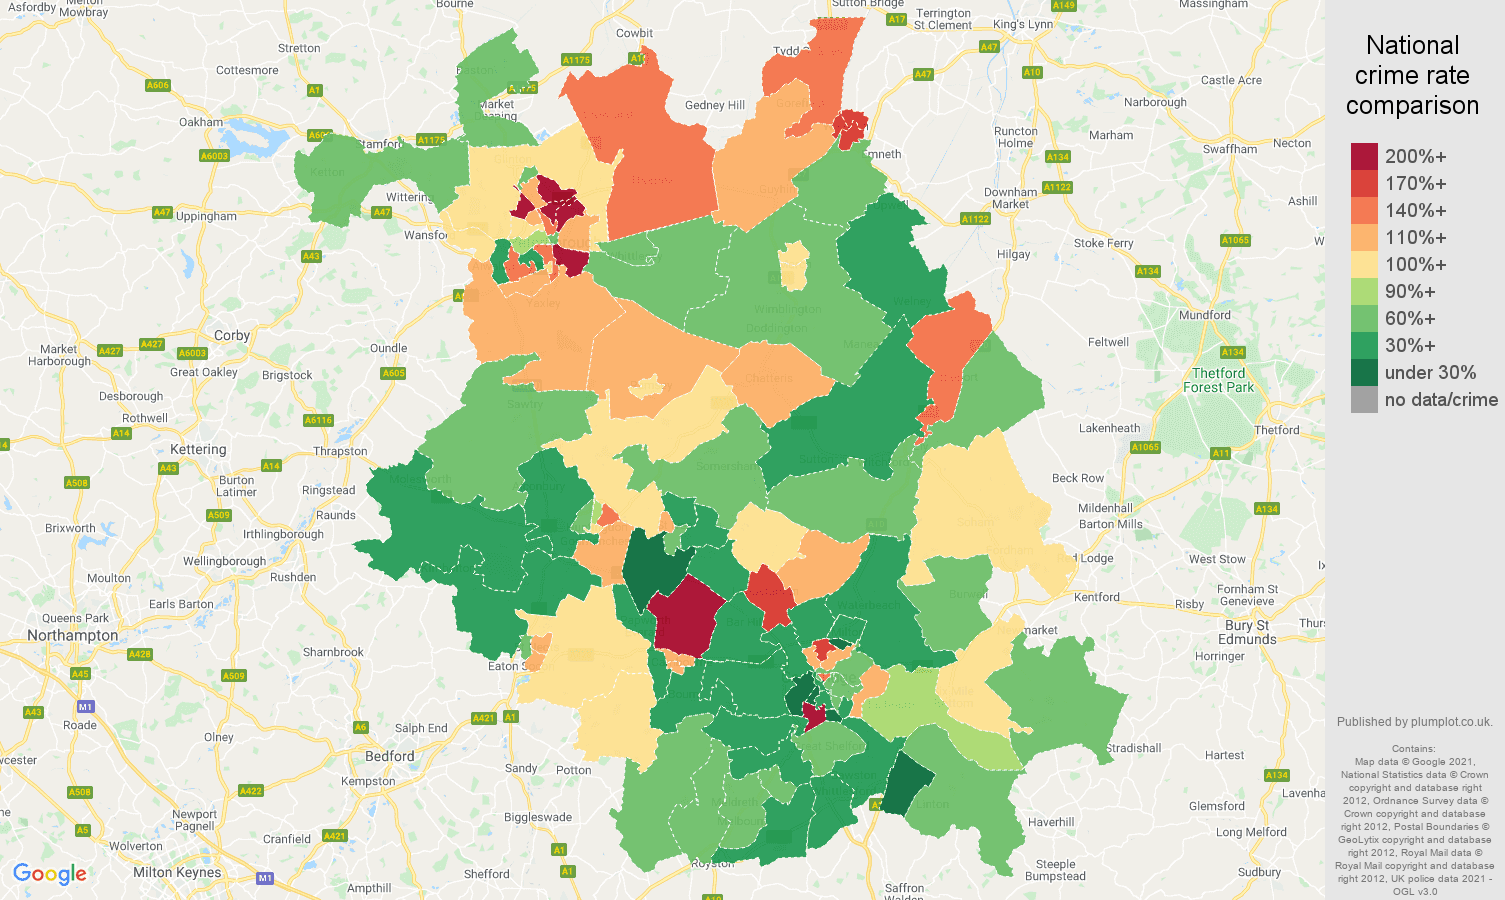 Cambridgeshire criminal damage and arson crime rate comparison map